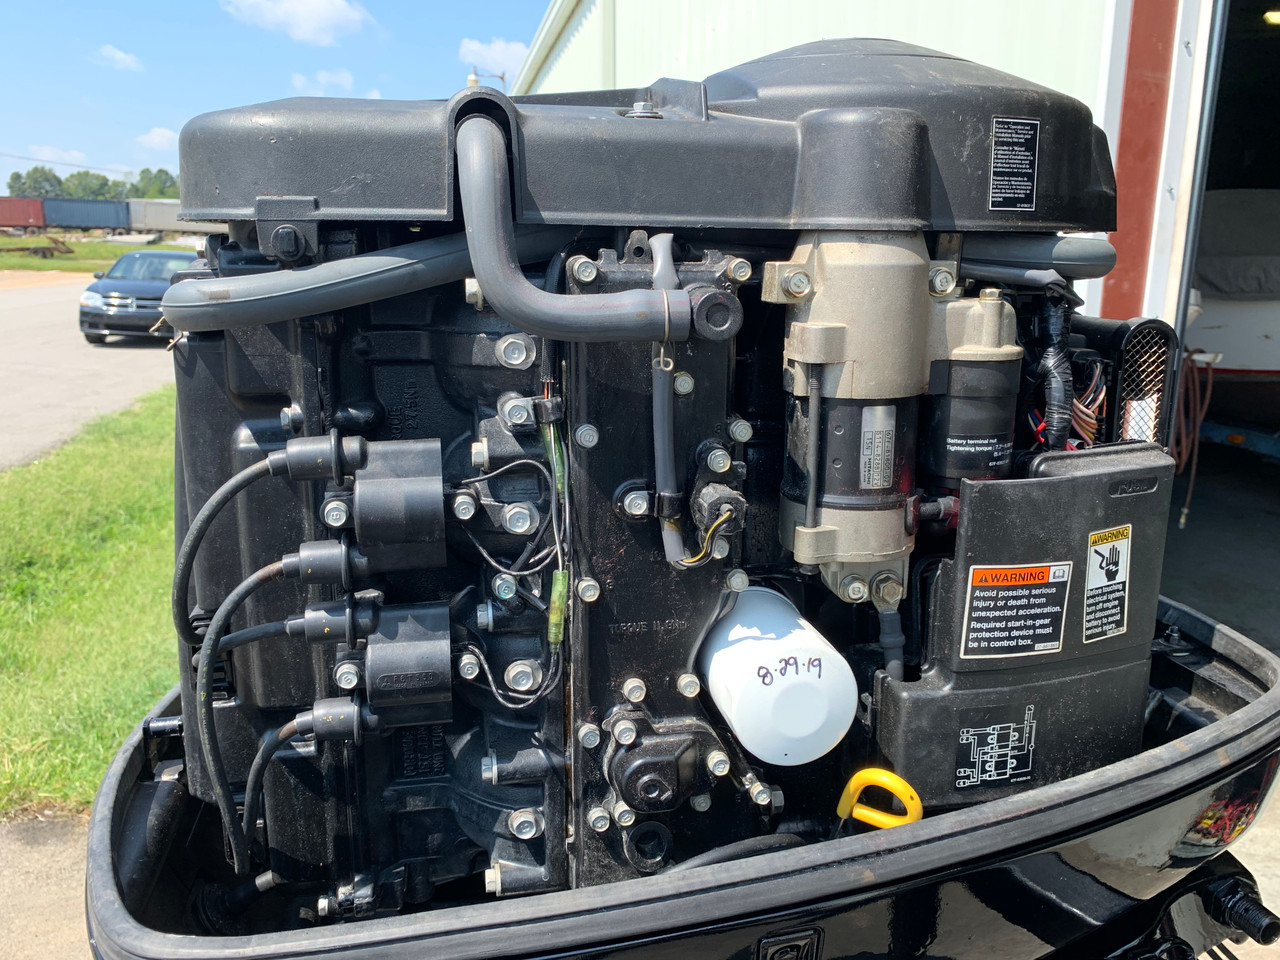 """2002 Mercury 90 HP 4 Cylinder Carbureted 4 Stroke 20"""" (L) Outboard Motor"""